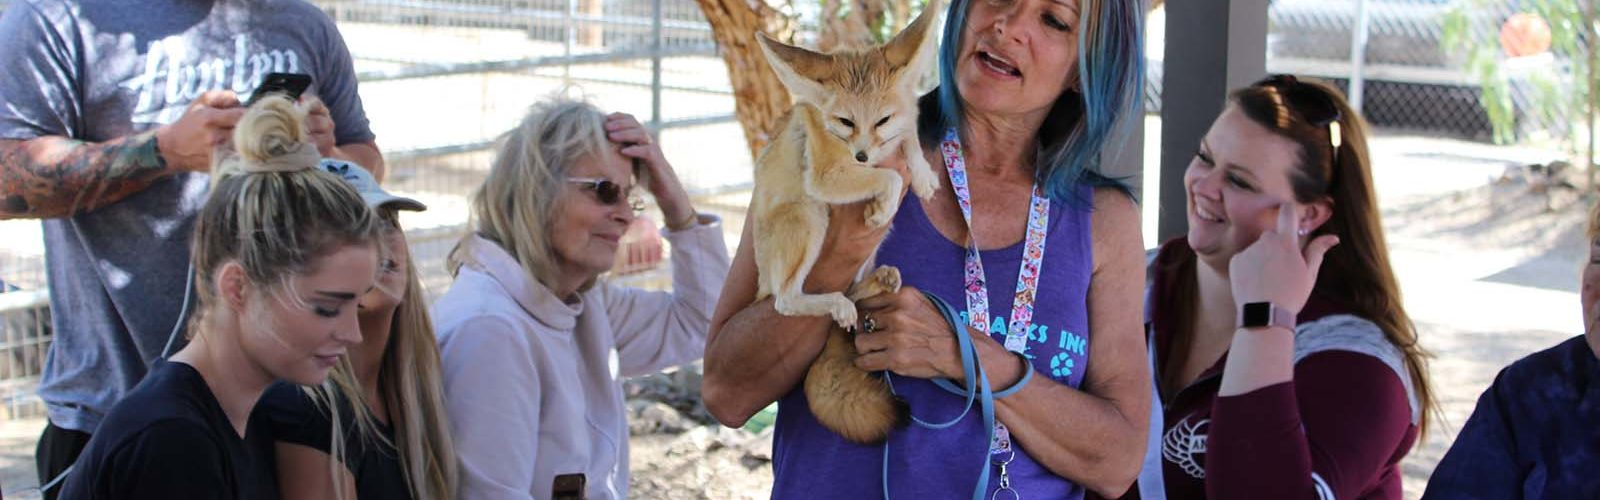 visiter-animal-tracks-inc-sanctuaire-animaux-sauvages-los-angeles-une